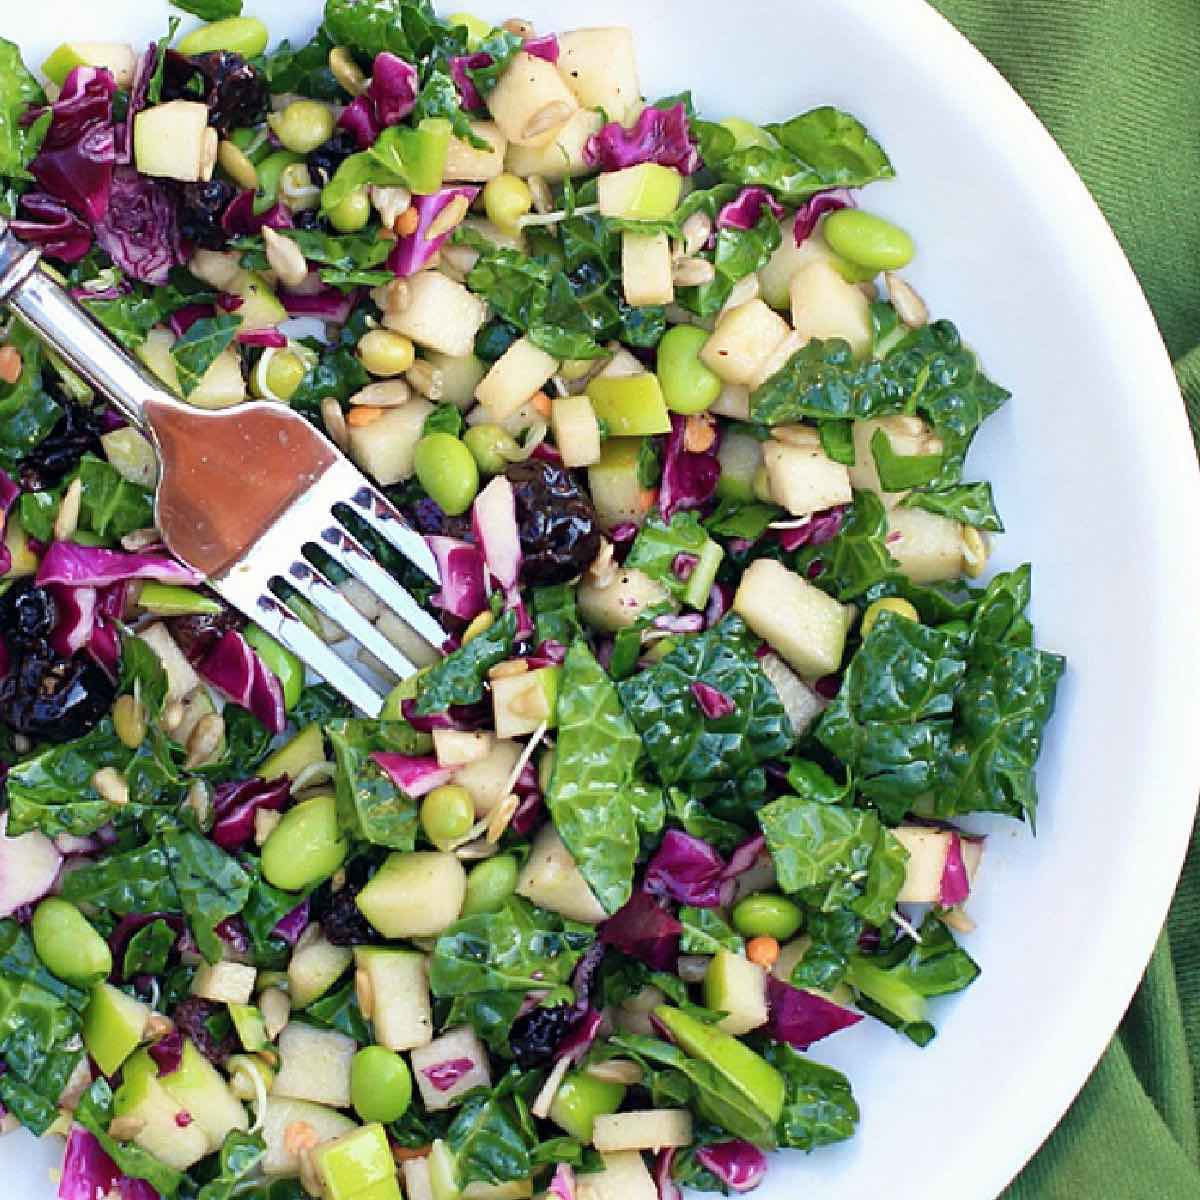 Foods for a breast cancer diet. White bowl with salad featuring kale, apples, edamame, red cabbage, and sunflower seeds.